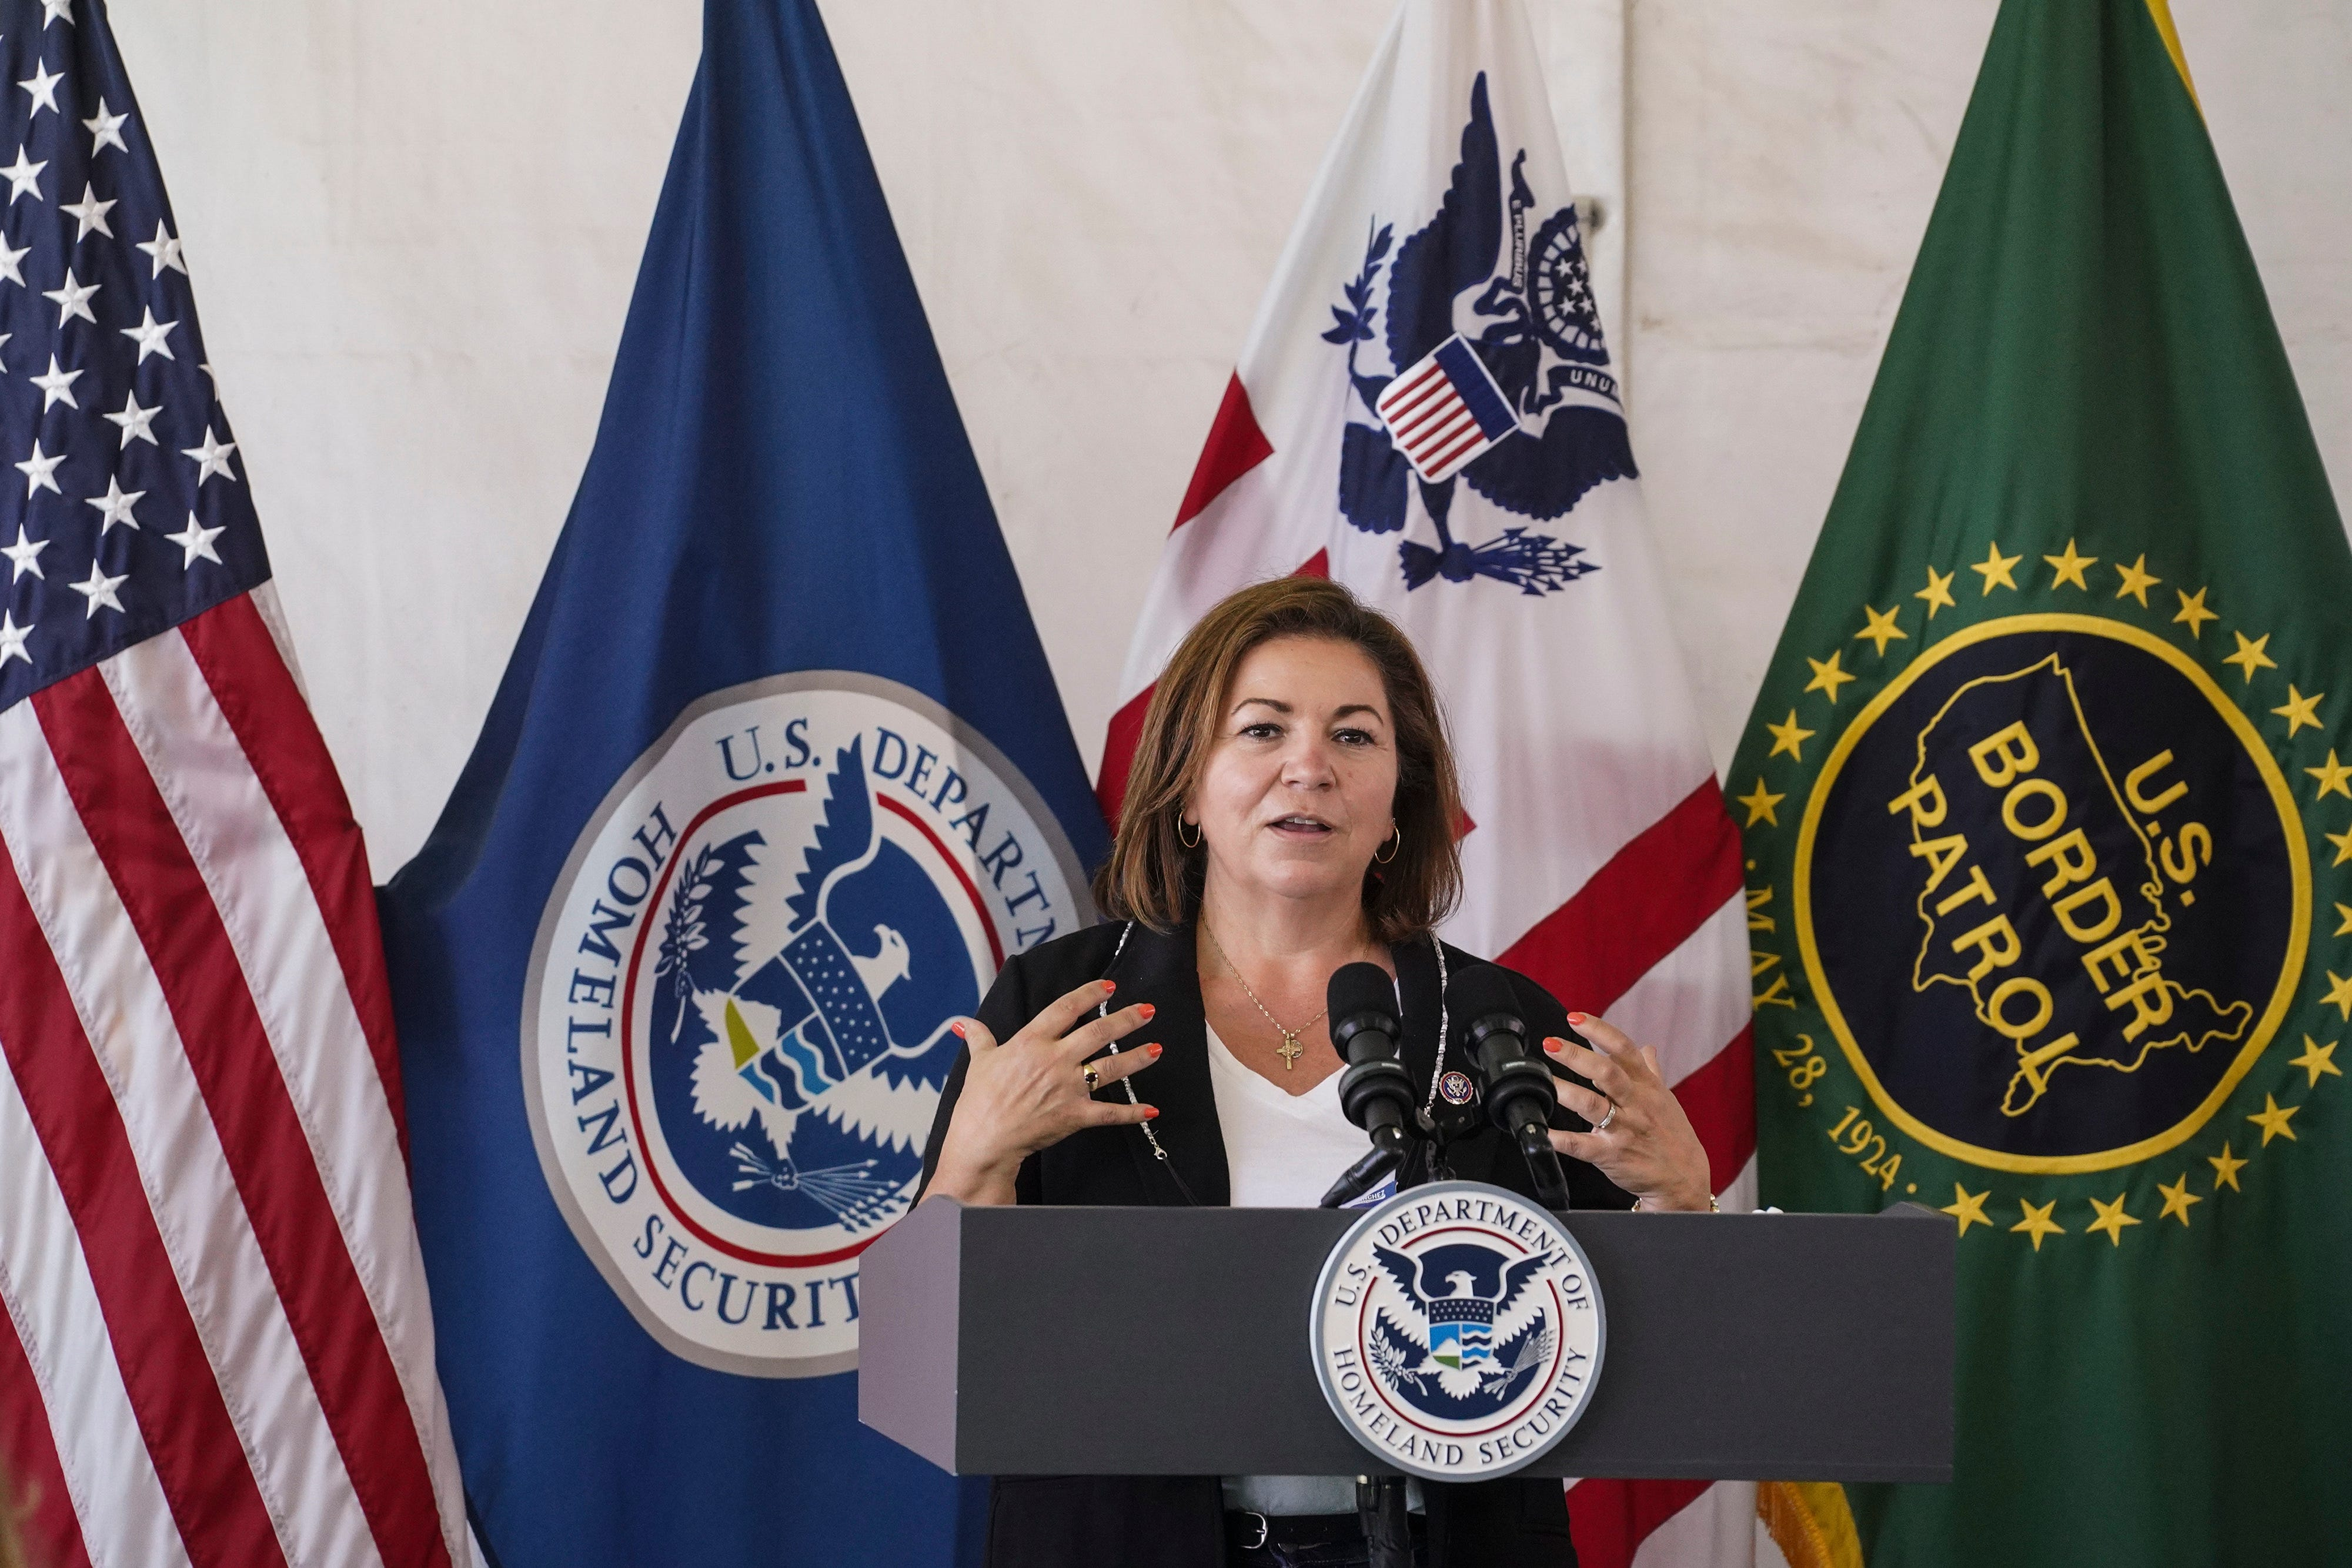 Rep. Linda Sanchez, D-Calif., attends a press conference at a temporary Customs and Border Protection processing center on May 7, 2021 in Donna, Texas.